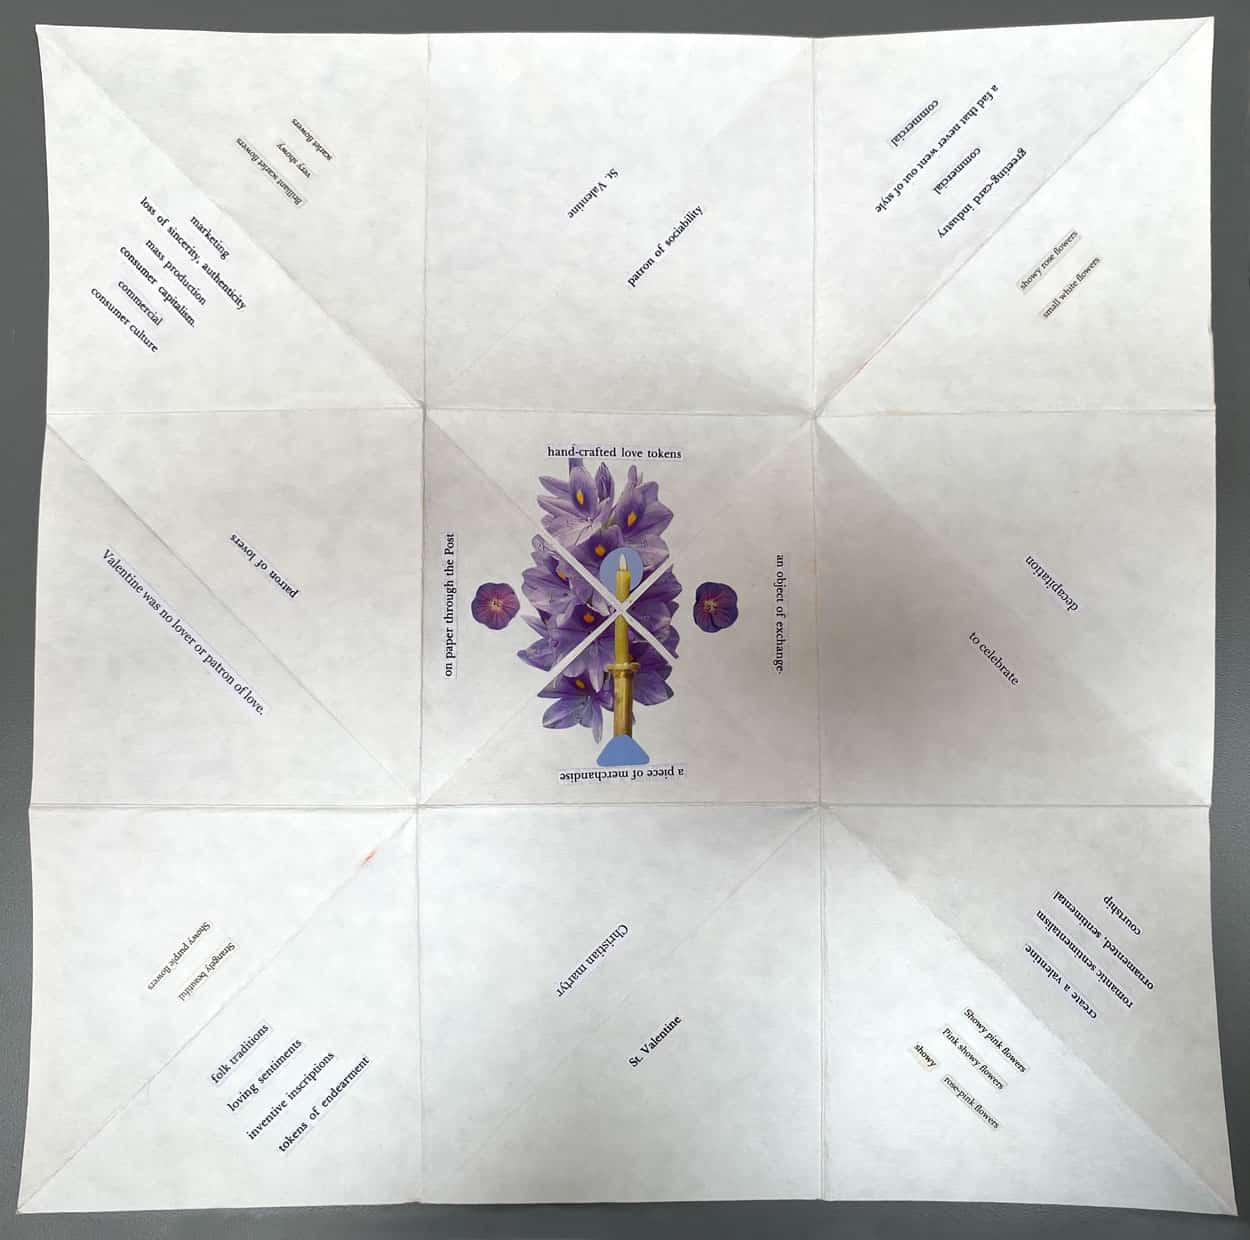 Square fold out of collaged words on corners. Image has 9 boxes, each containing different words. The middle has a purple flower and candle.